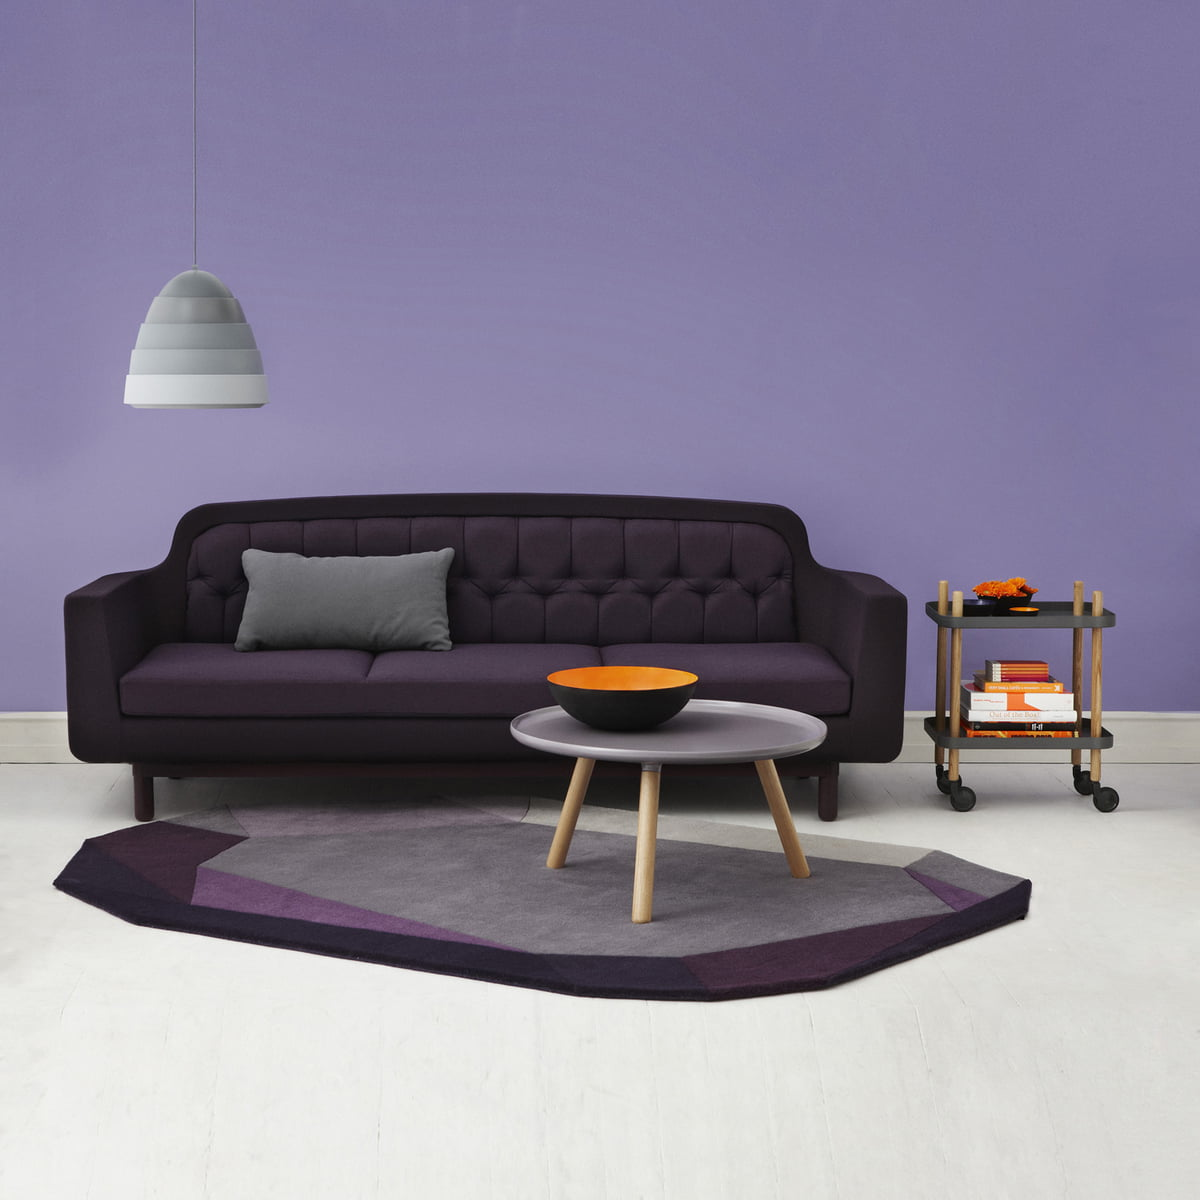 onkel sofa von normann copenhagen. Black Bedroom Furniture Sets. Home Design Ideas